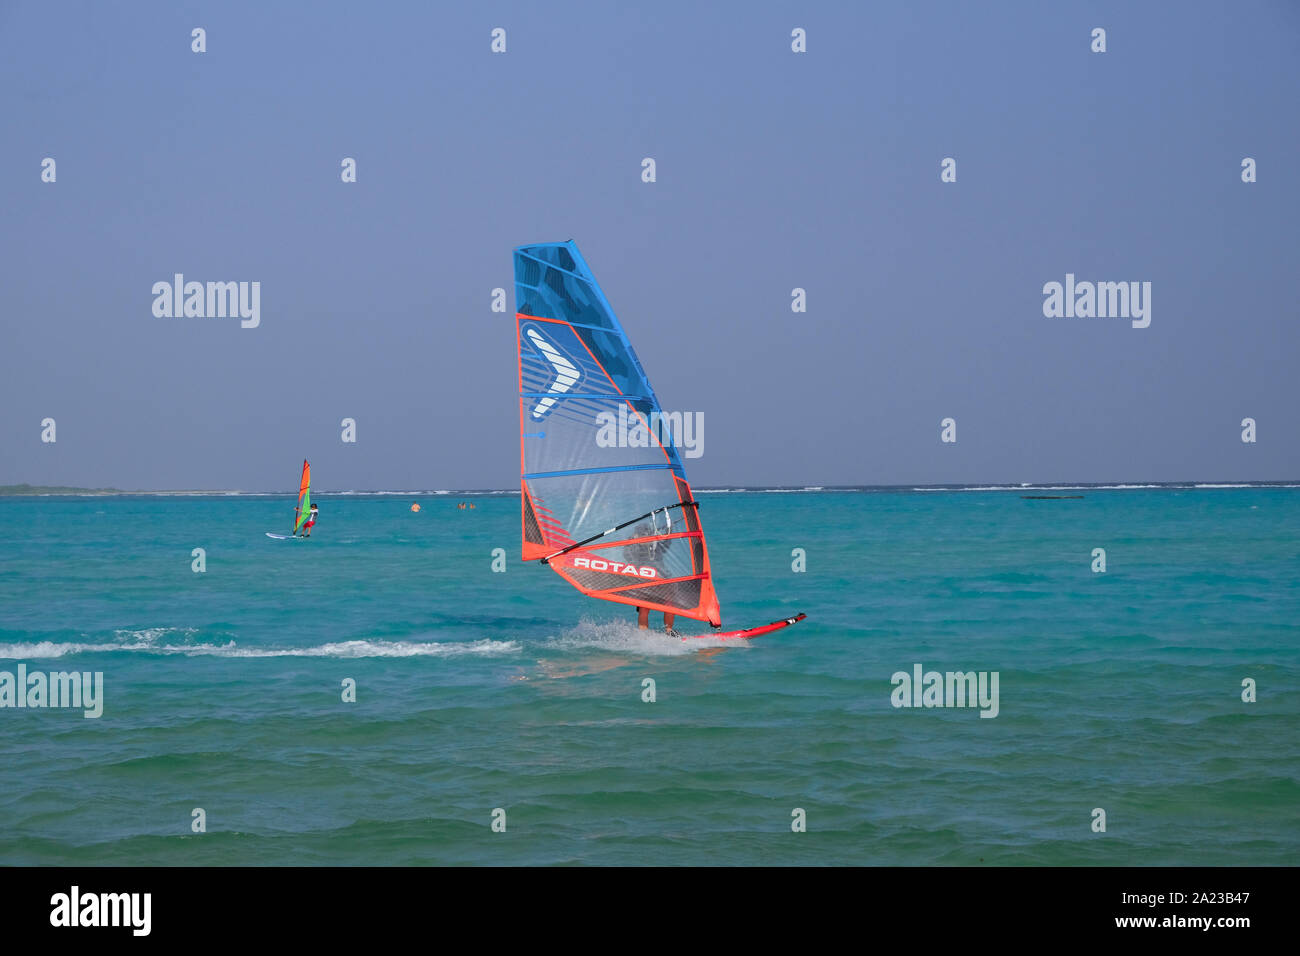 Boat Jibe High Resolution Stock Photography And Images Alamy